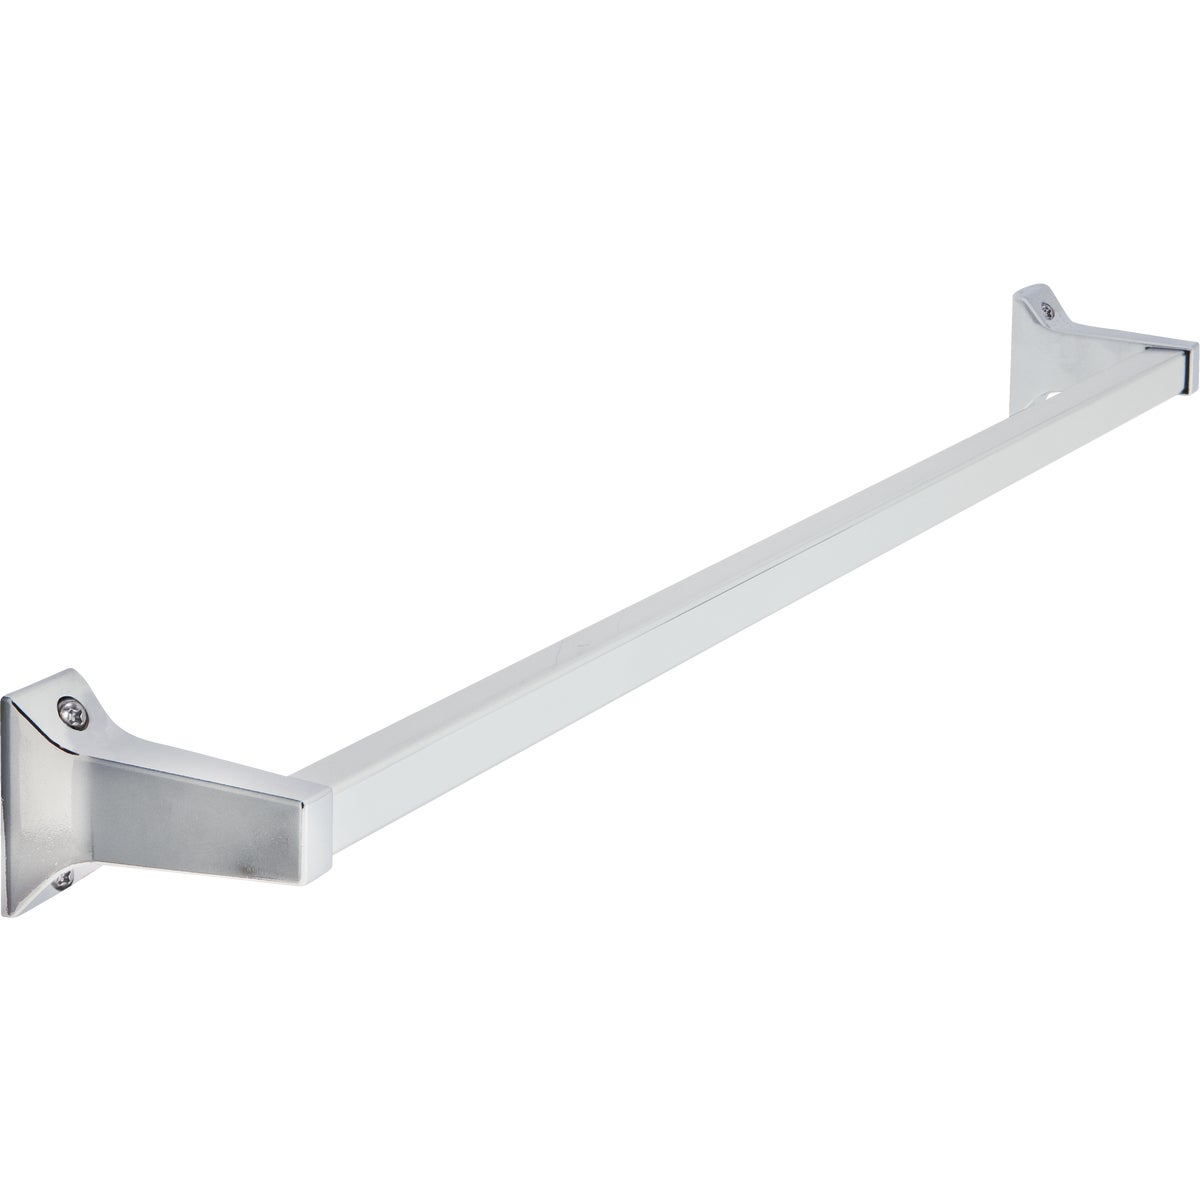 "24"" CHROME TOWEL BAR - 408865 by Do it Best"